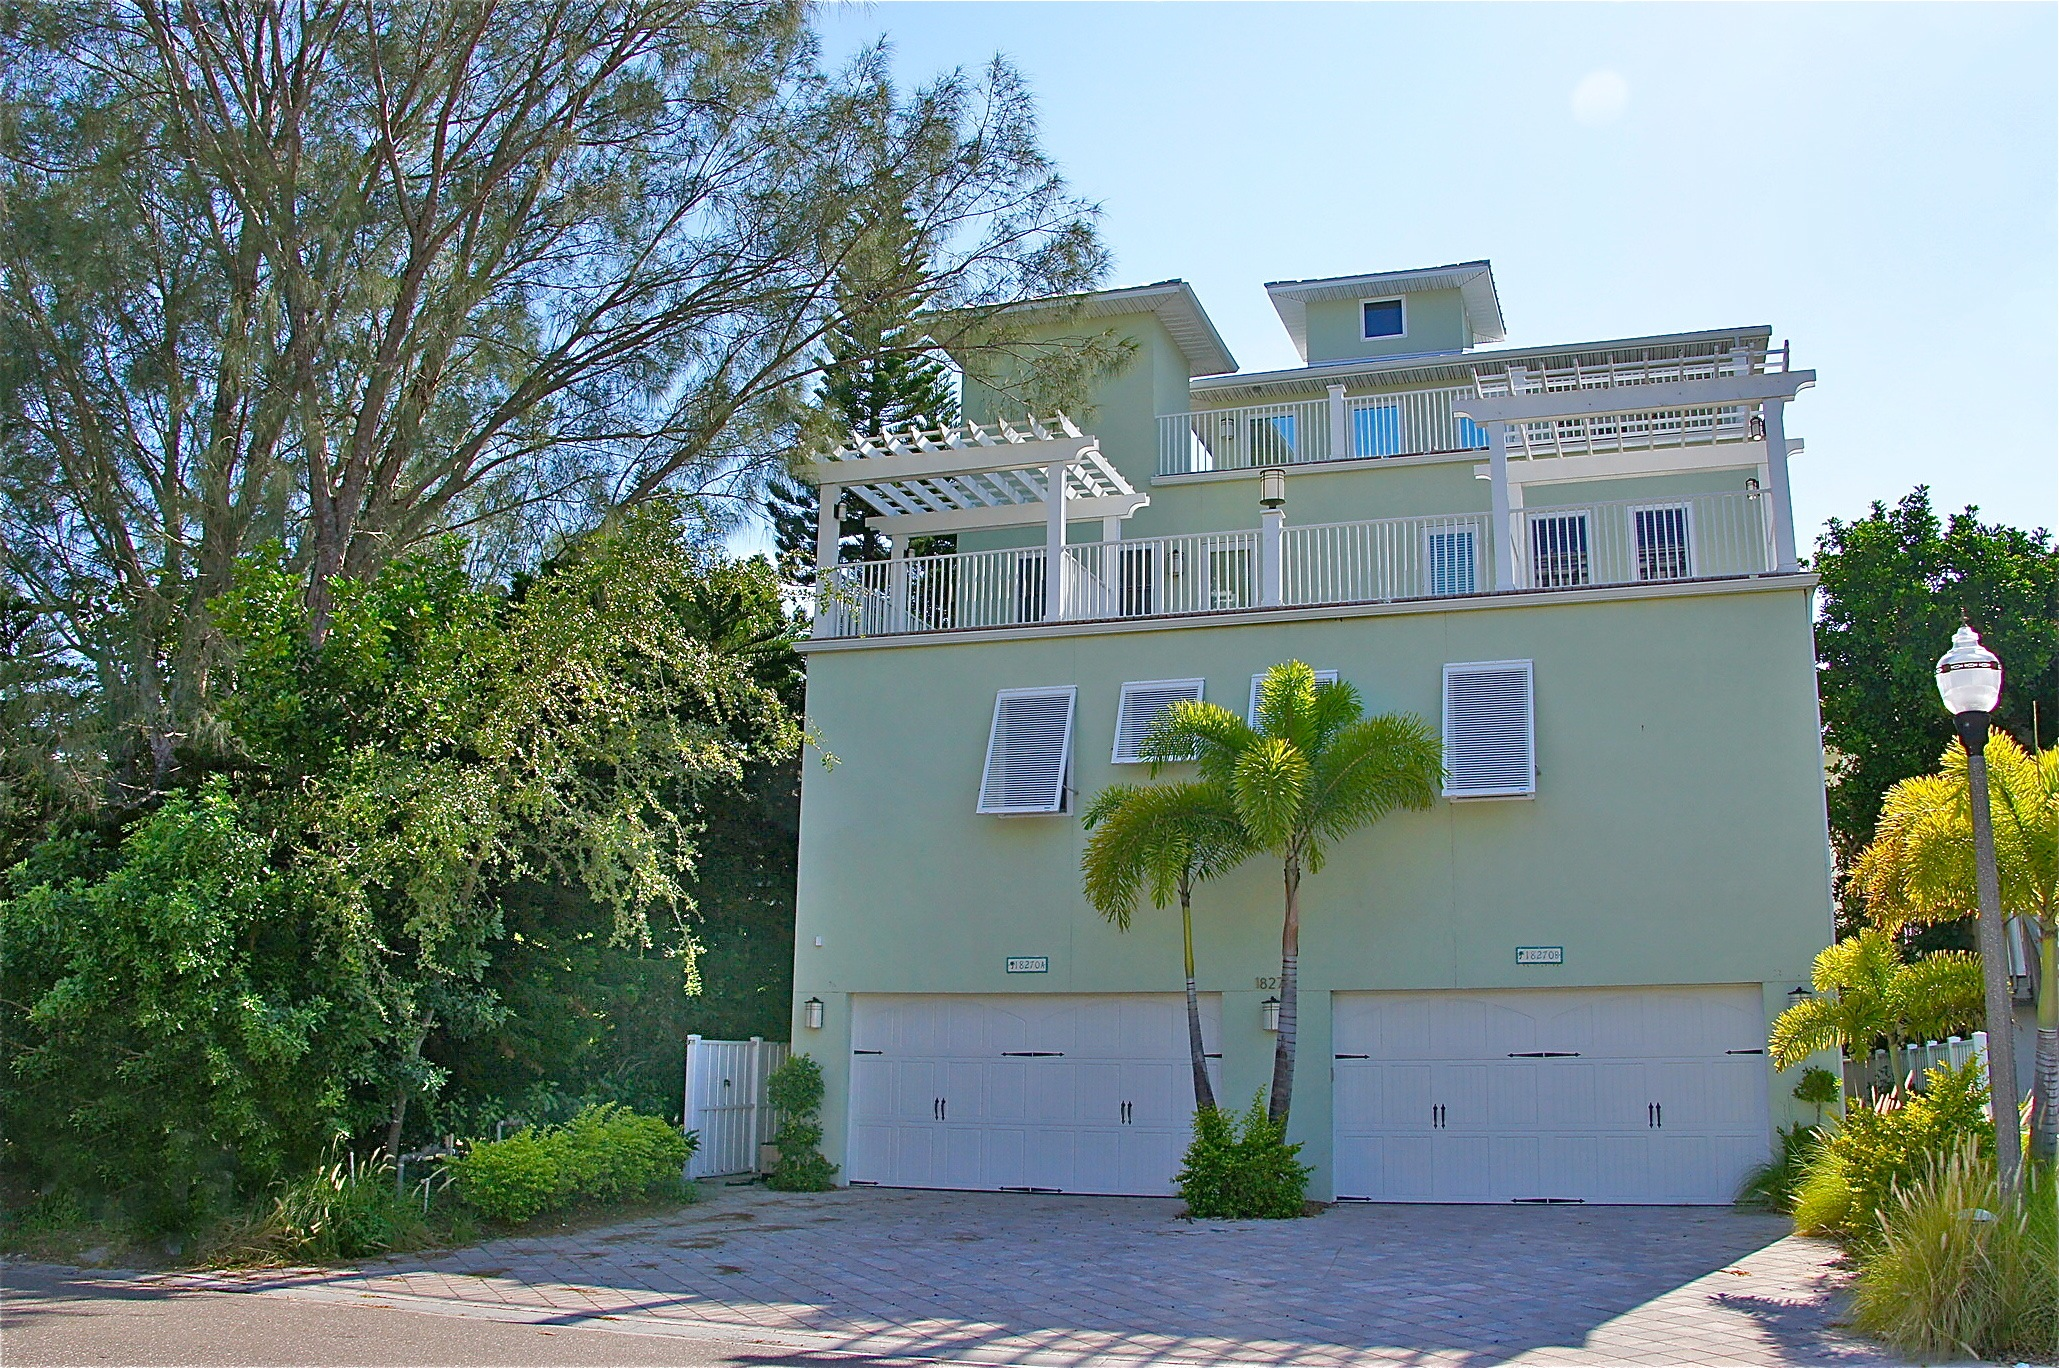 7336058 4/6/2 Redington Shores